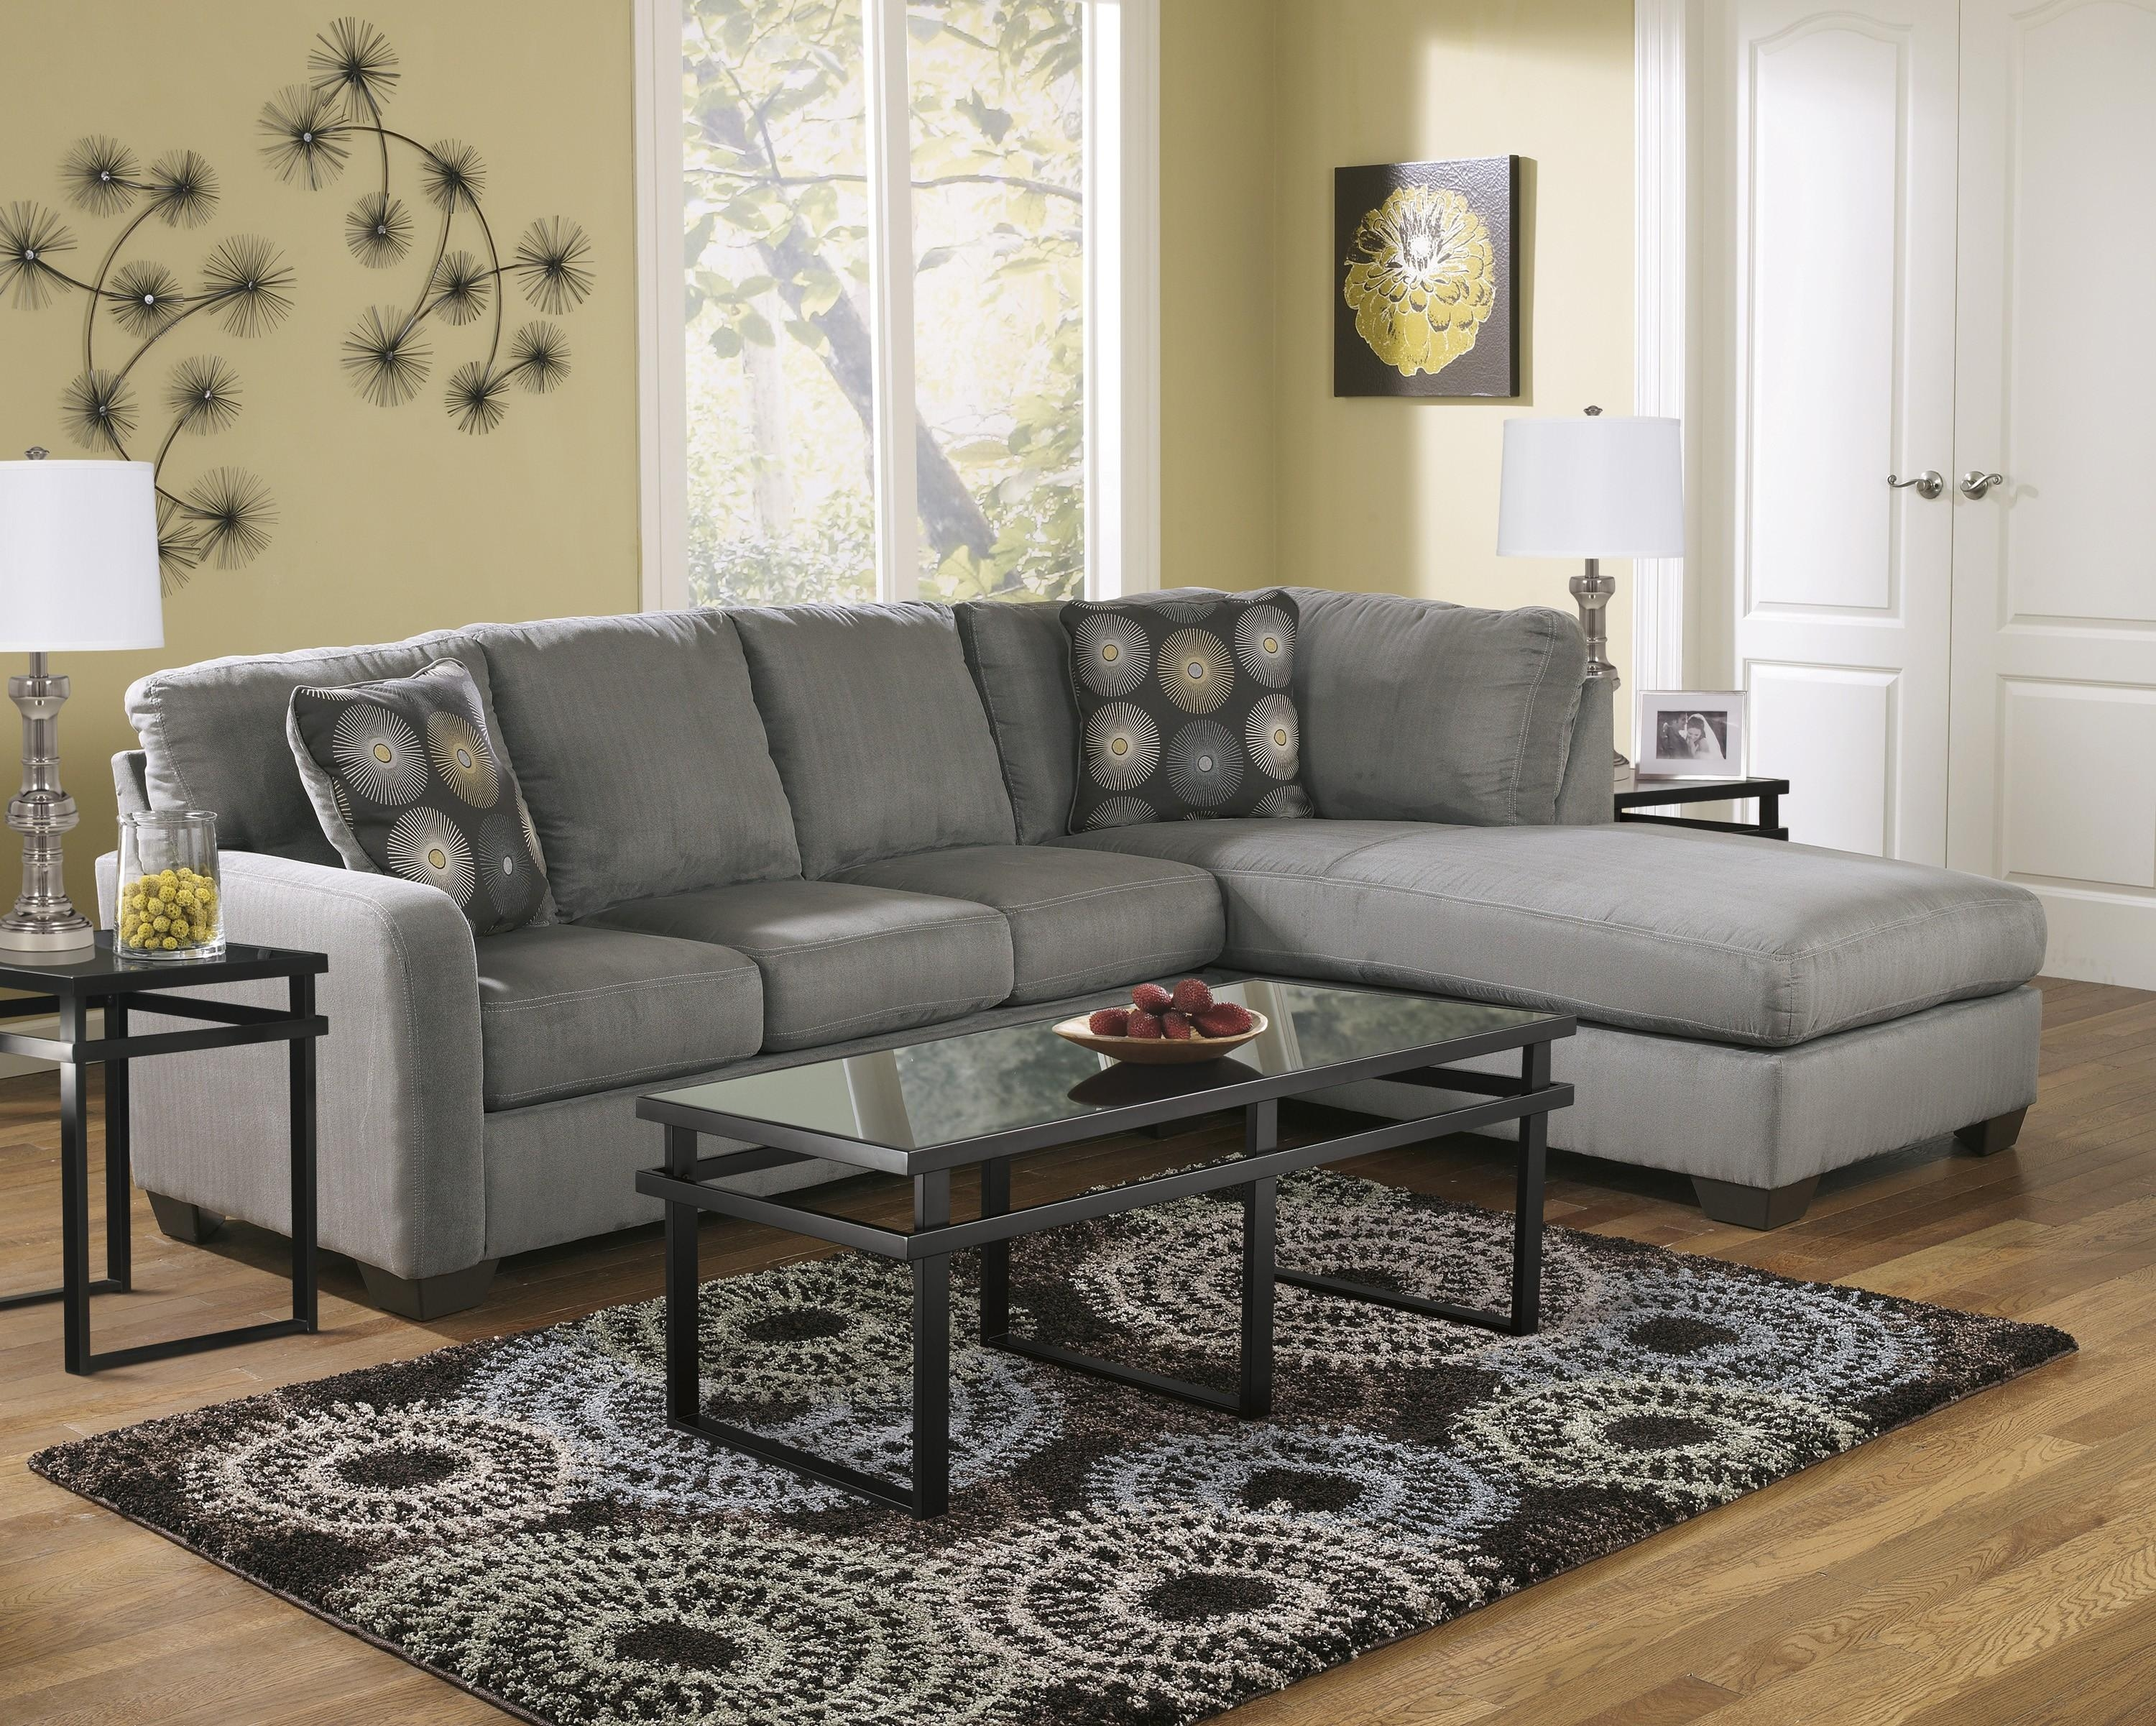 Zella Charcoal 2 Piece Sectional Sofa For $ (View 2 of 20)